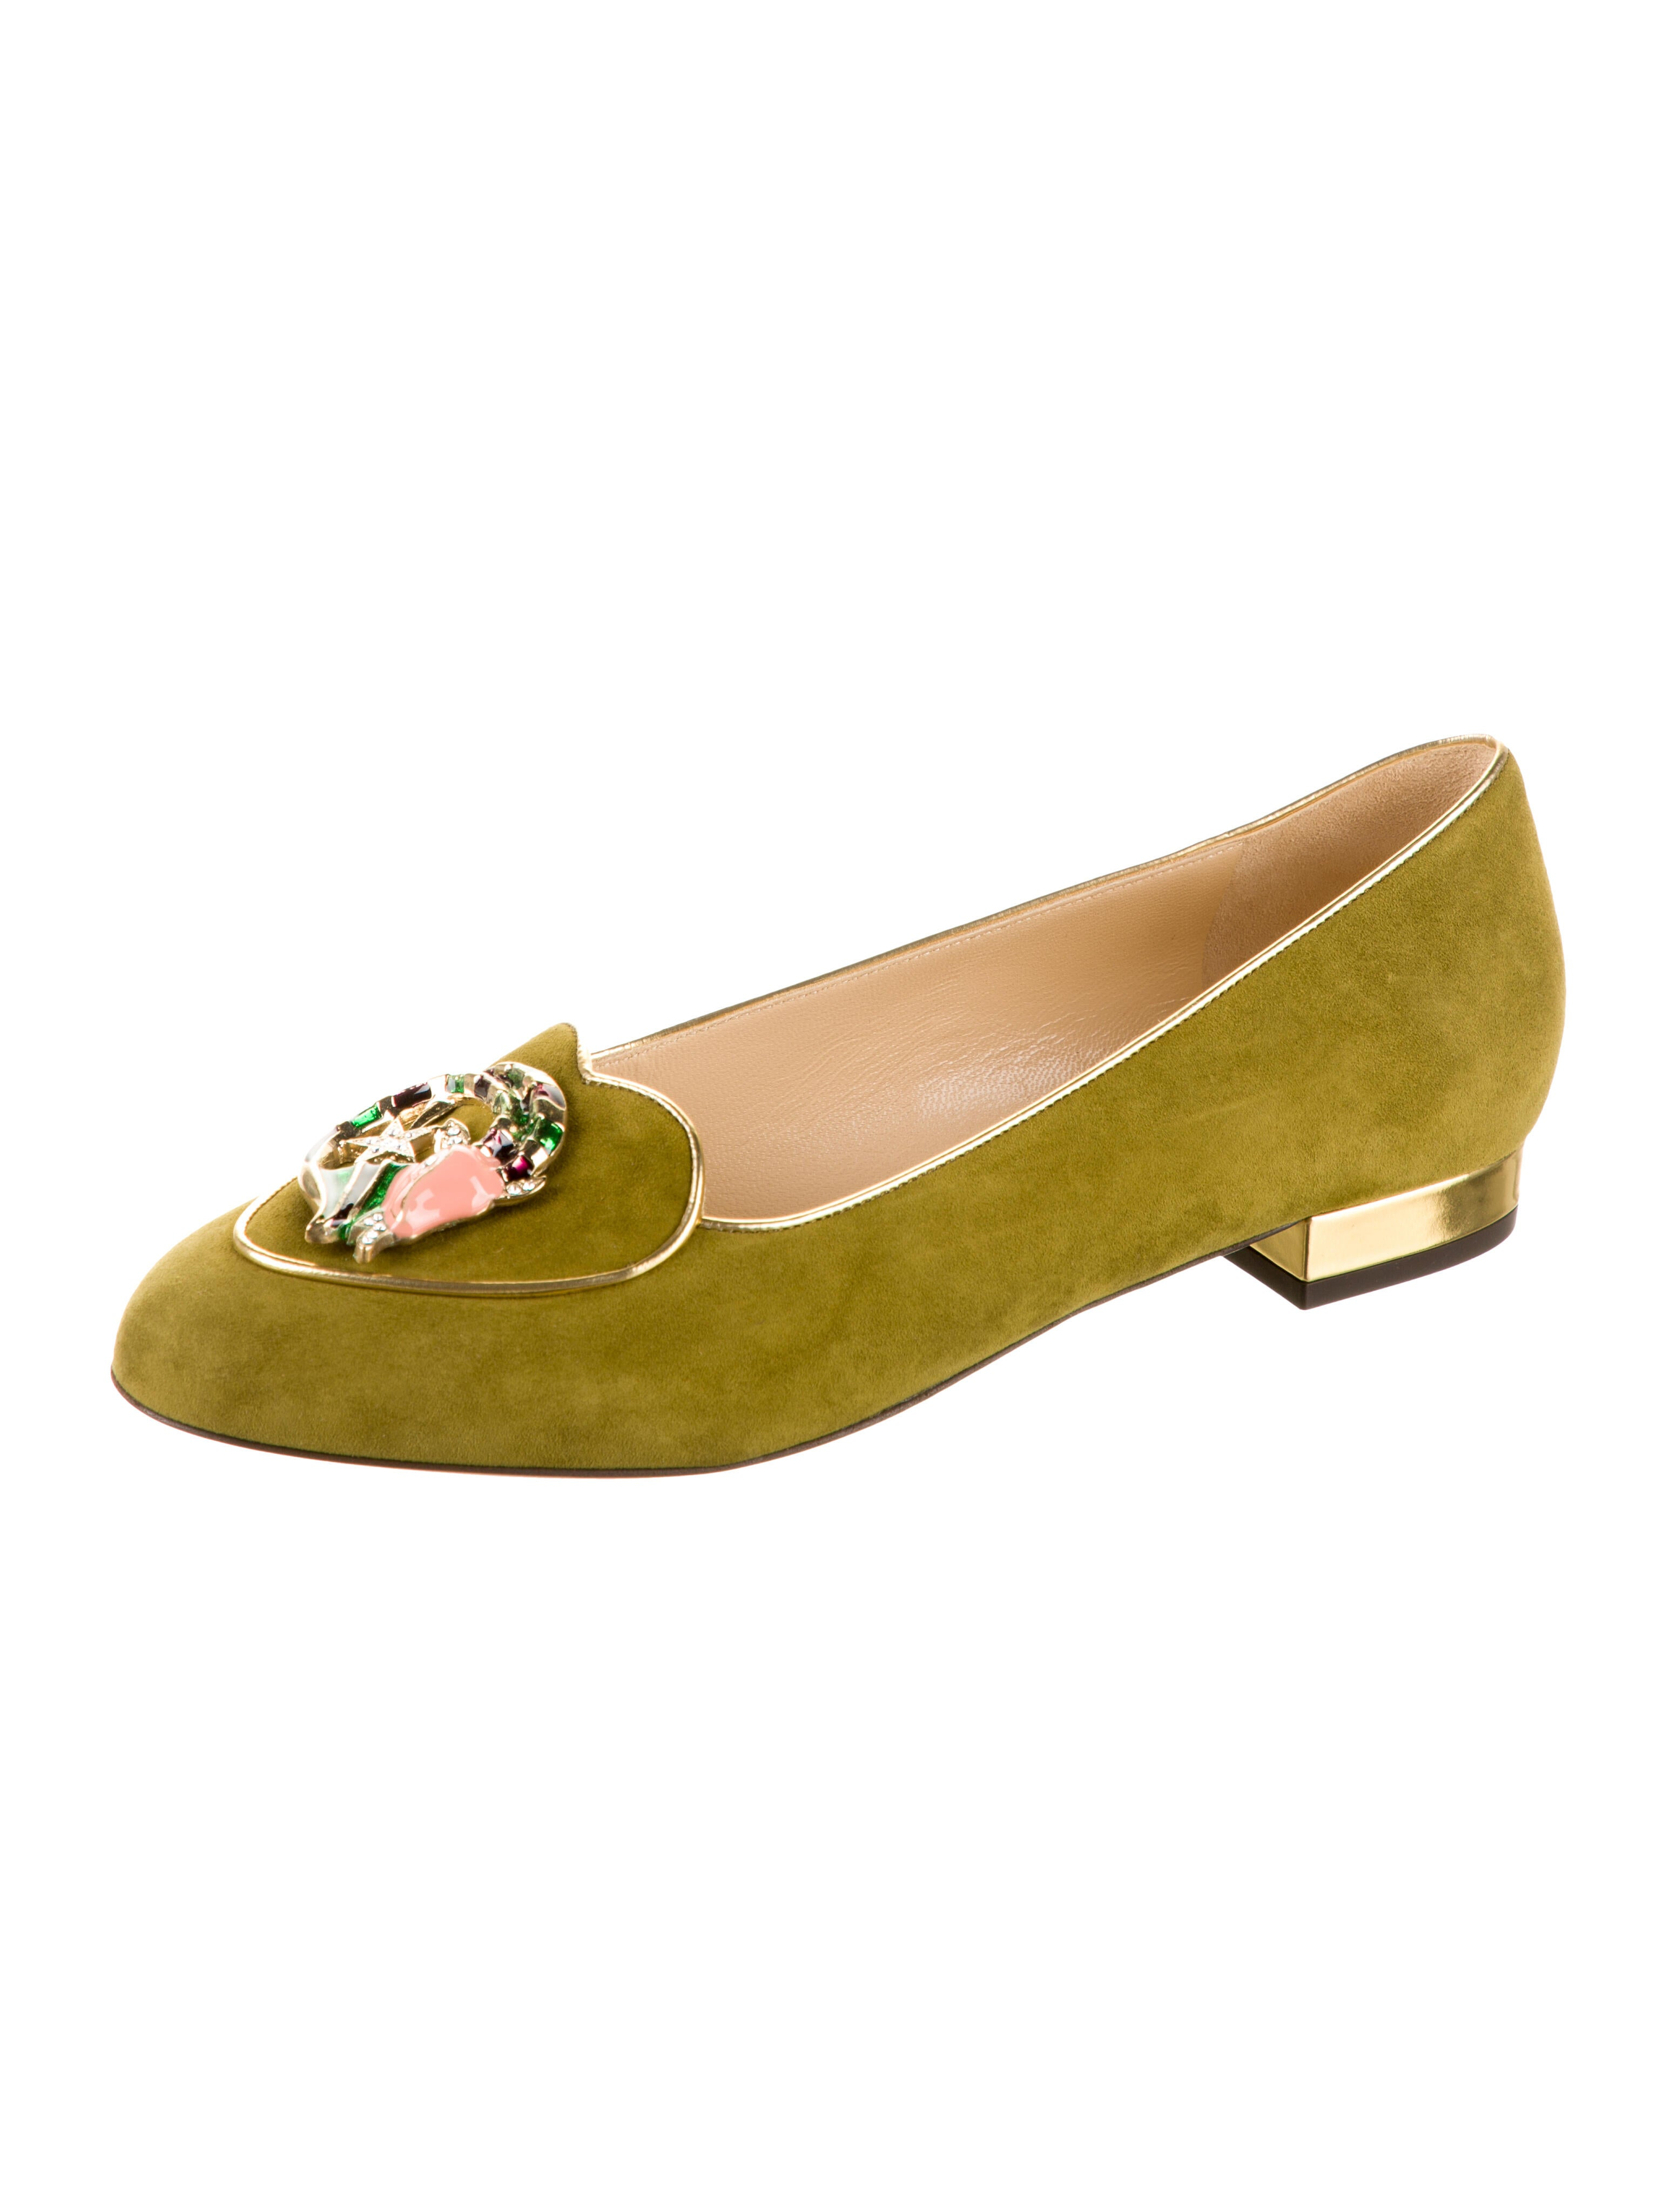 charlotte olympia | The RealReal